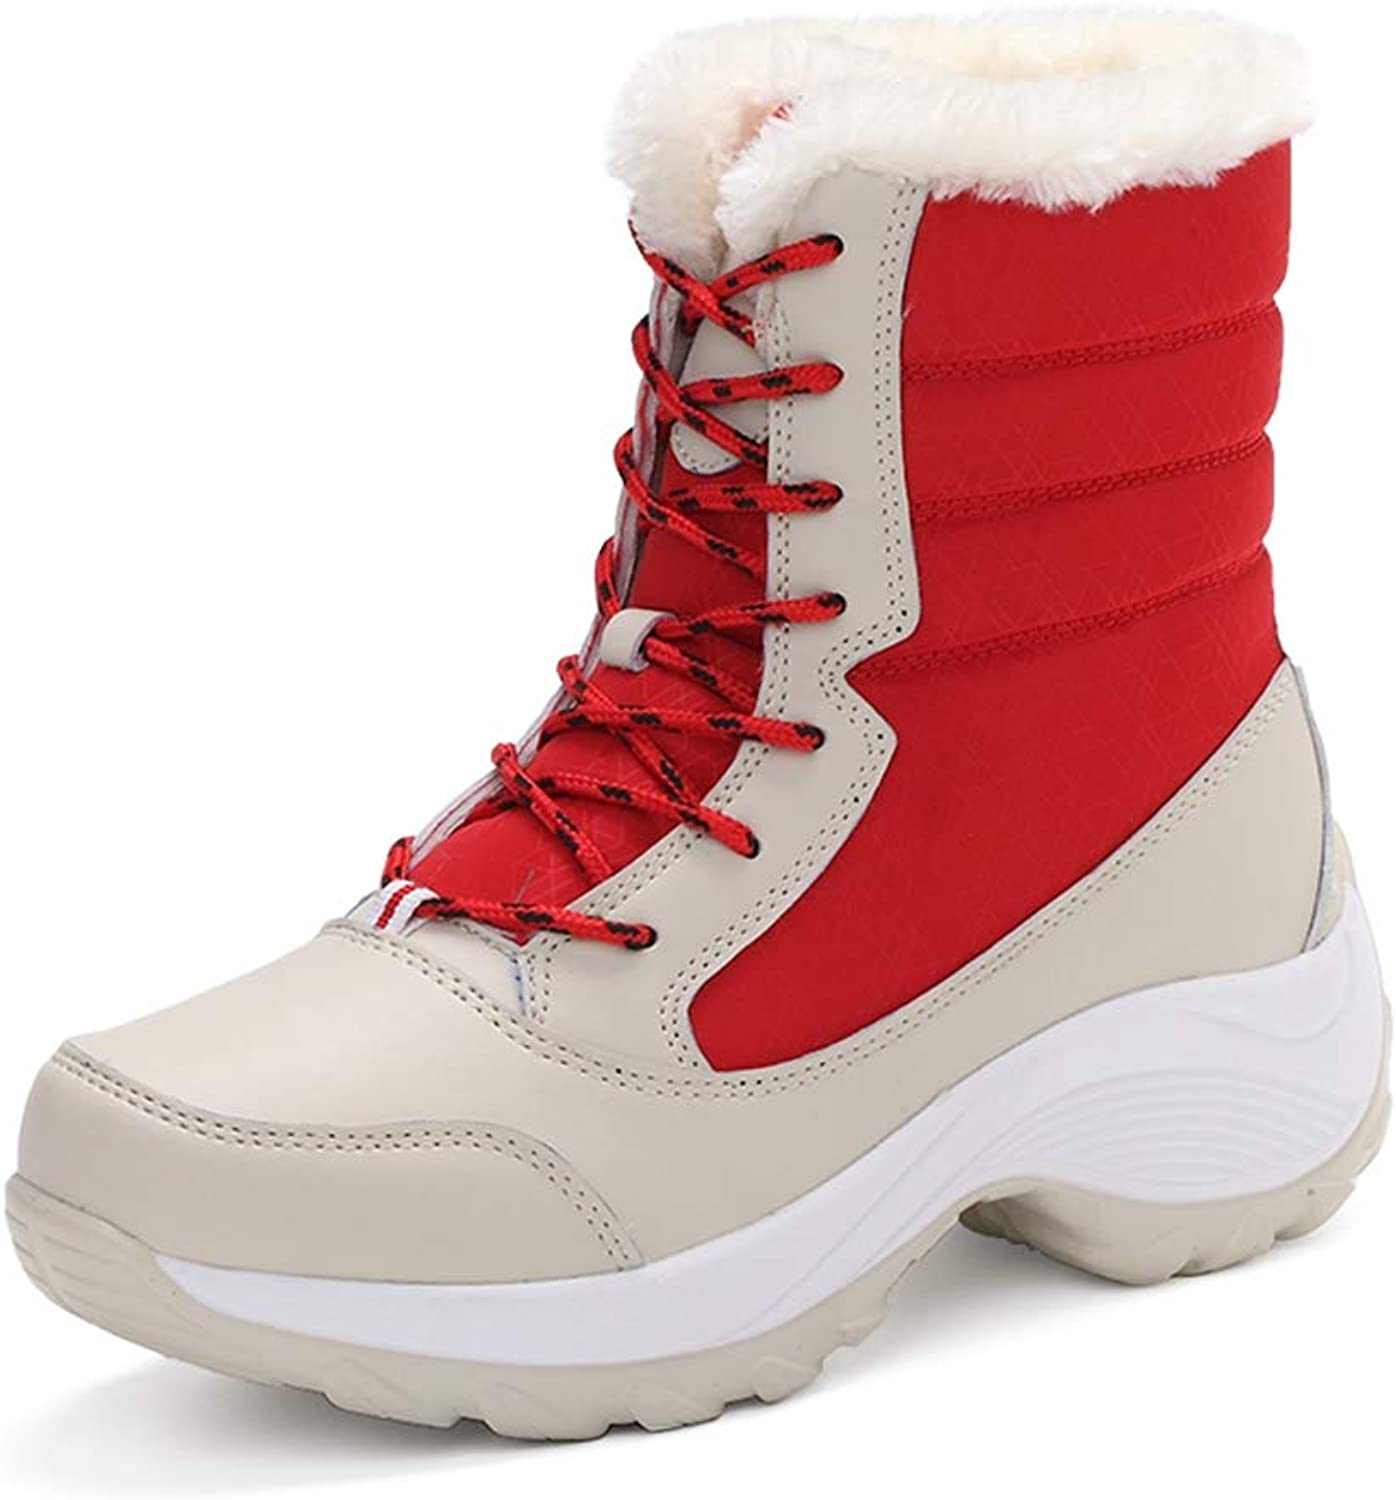 GIY Women's Winter Waterproof Fur Lined Snow Boots Non-Slip Winter Warn Platform Outdoor Ankle Boots